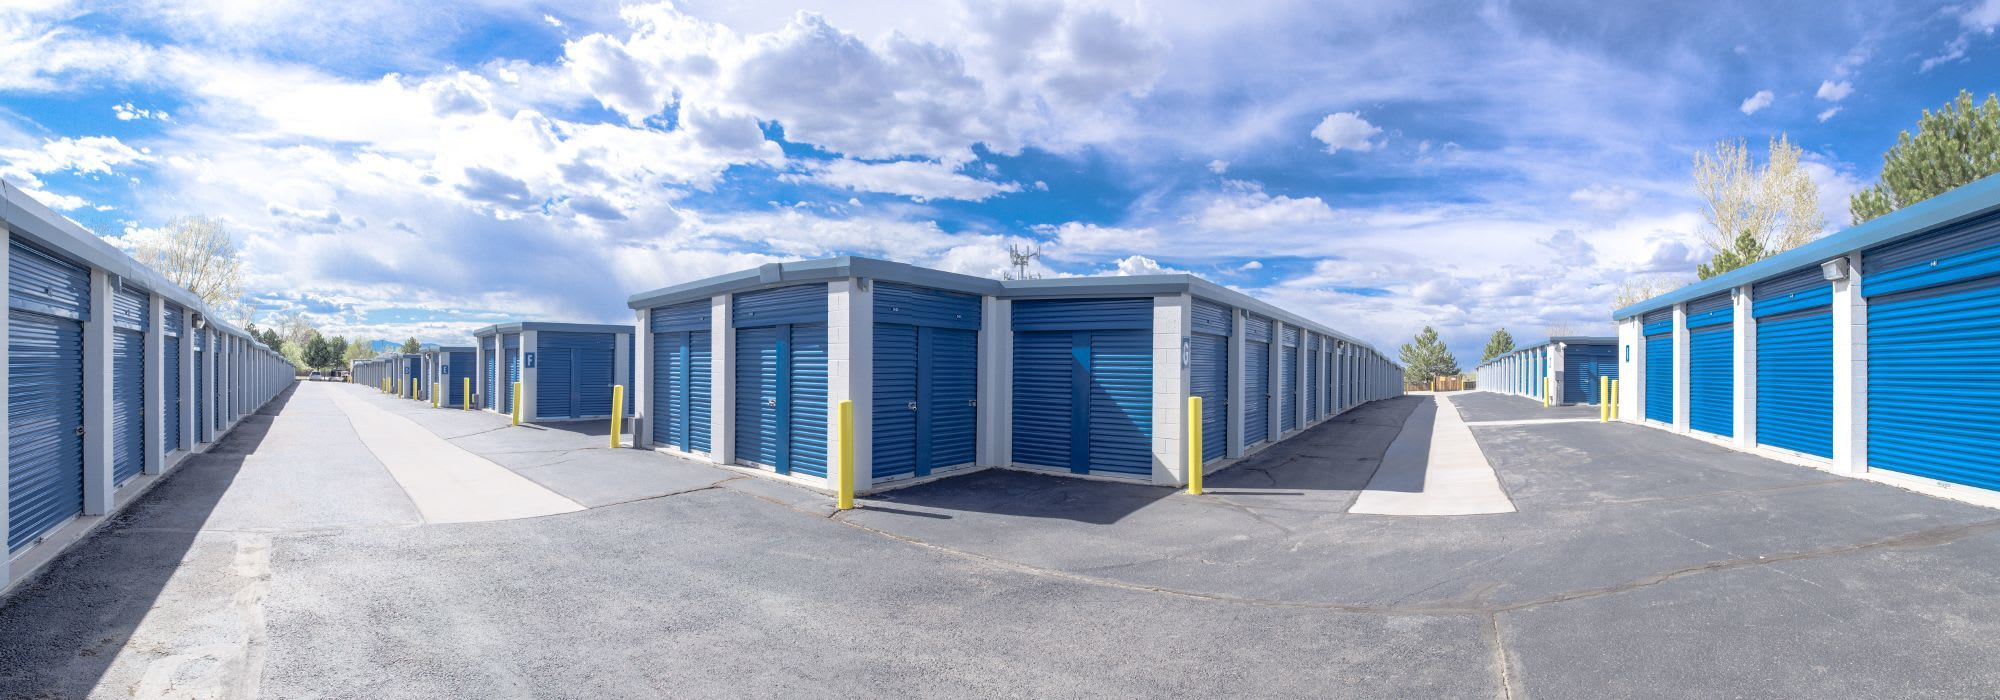 Rely on best storage facility for your invaluable items